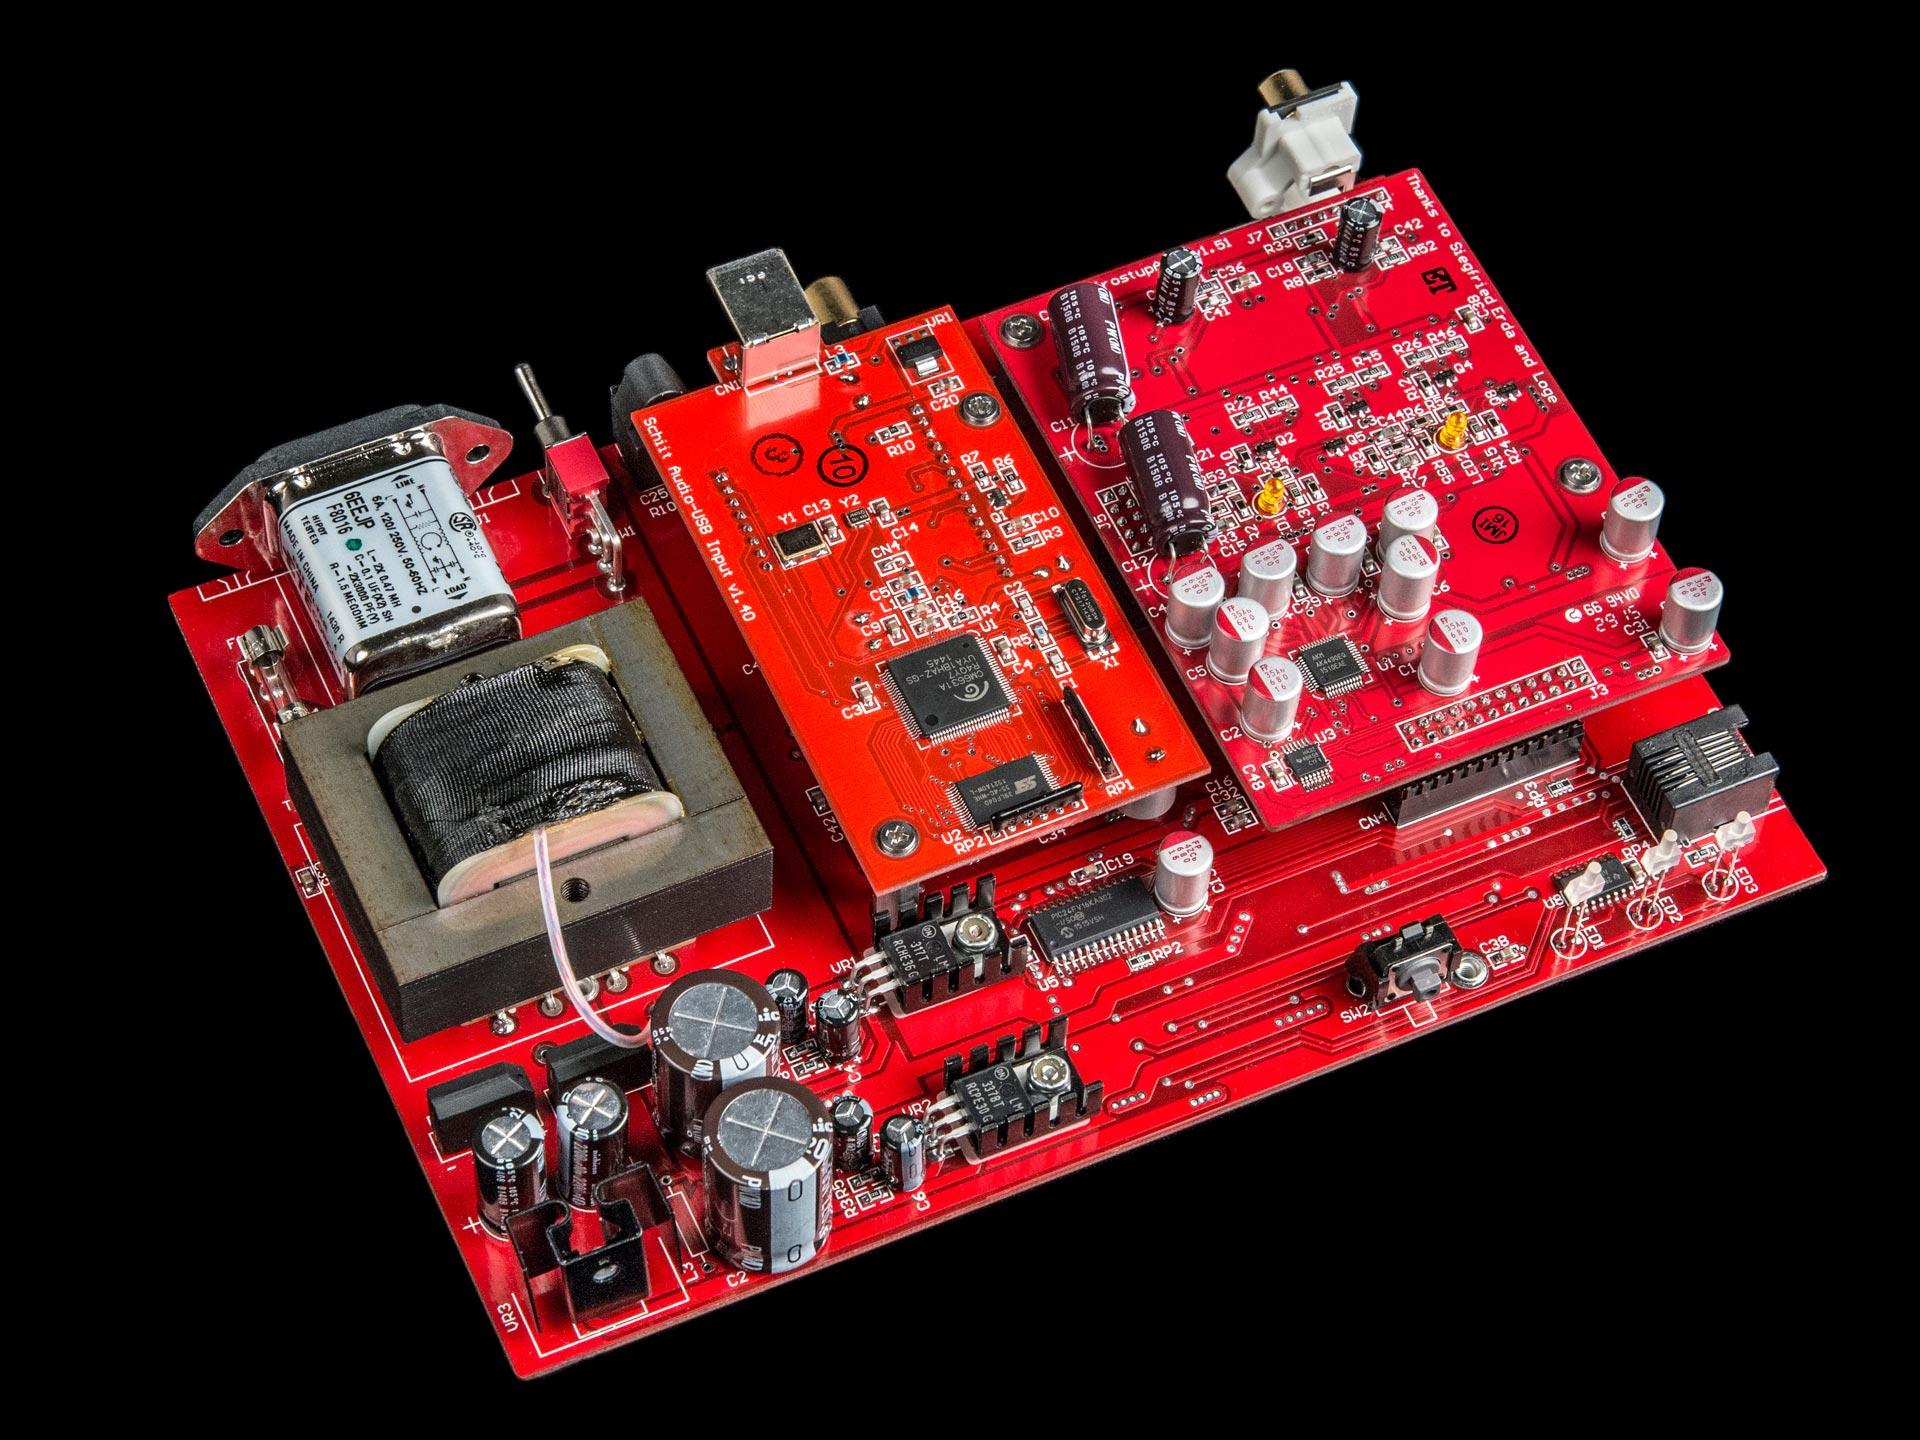 Schiit Audio Headphone Amps And Dacs Made In Usa